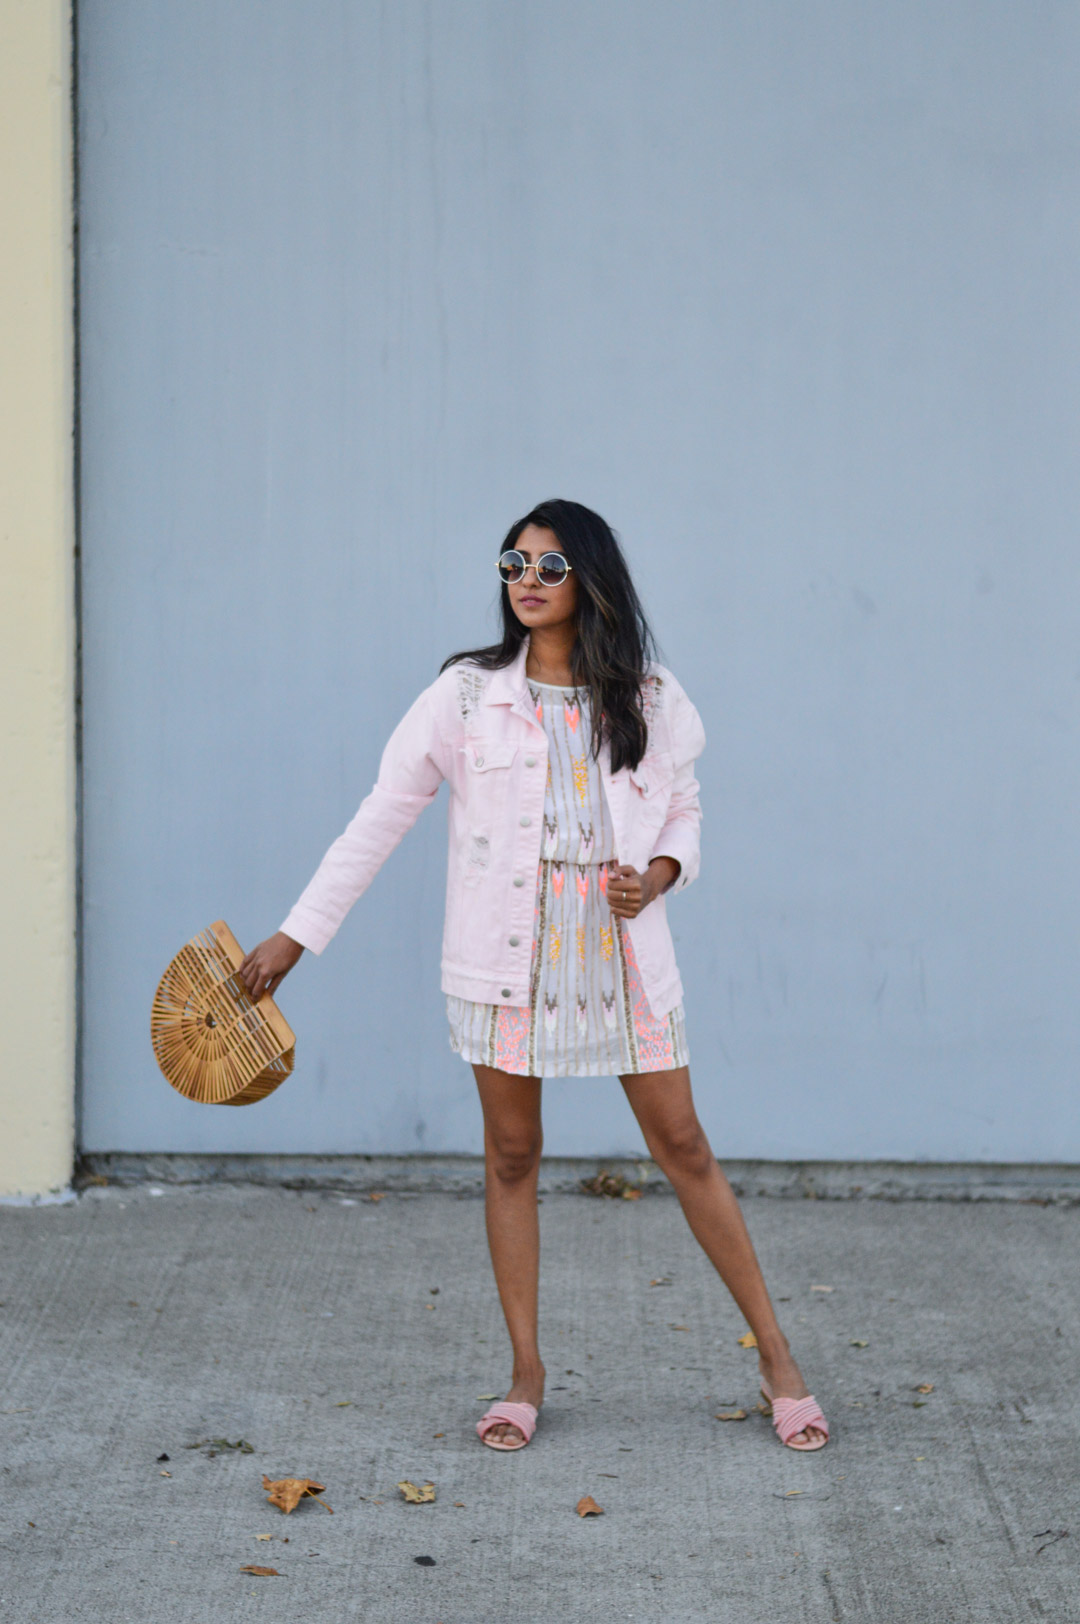 sequin-dress-daytime-pink-NYE-outfit-party-style 6